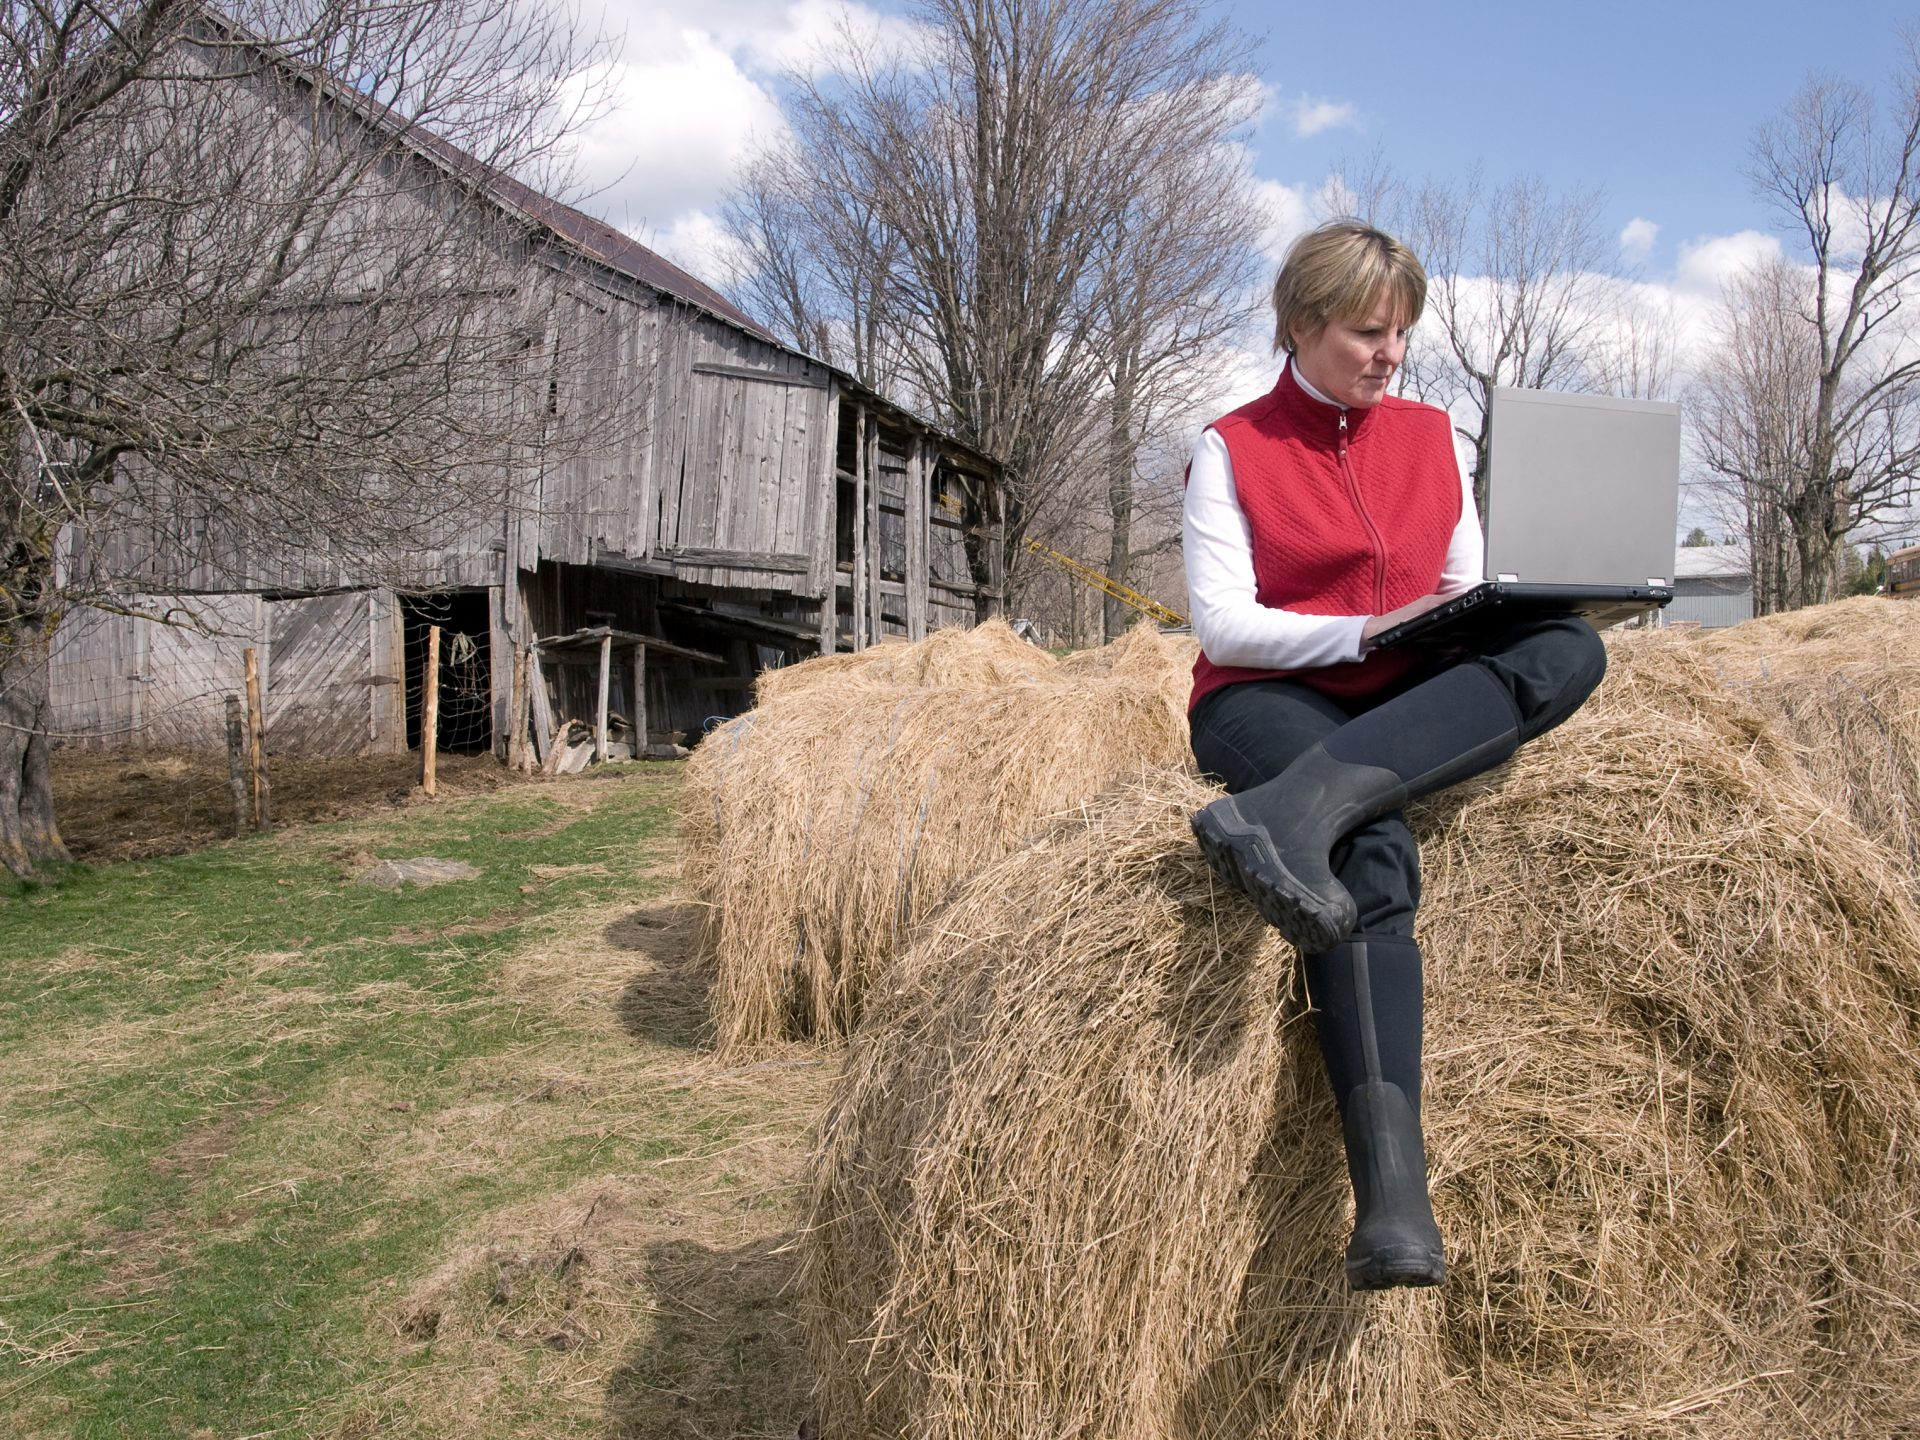 USDA to Make up to $1.5 Billion Available to Help Rural Communities Access High-Speed Internet